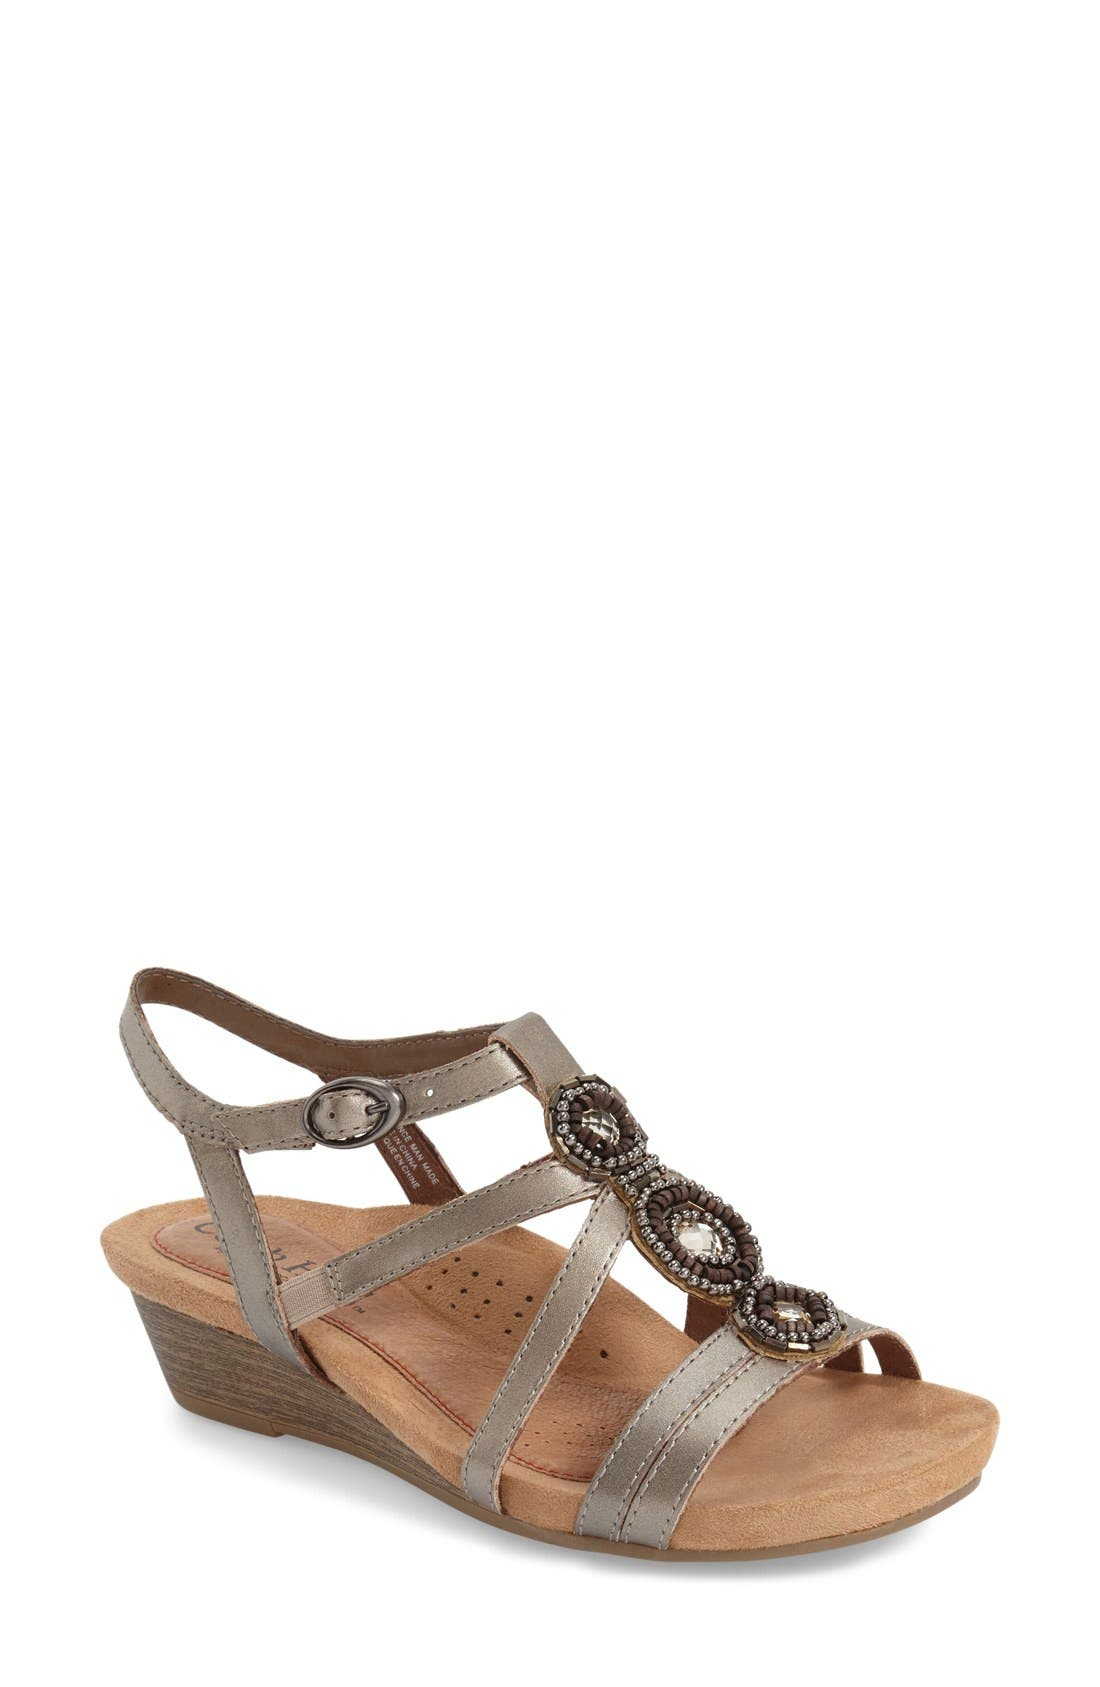 Alternate Image 1 Selected - Rockport Cobb Hill 'Hannah' Leather Sandal (Women)